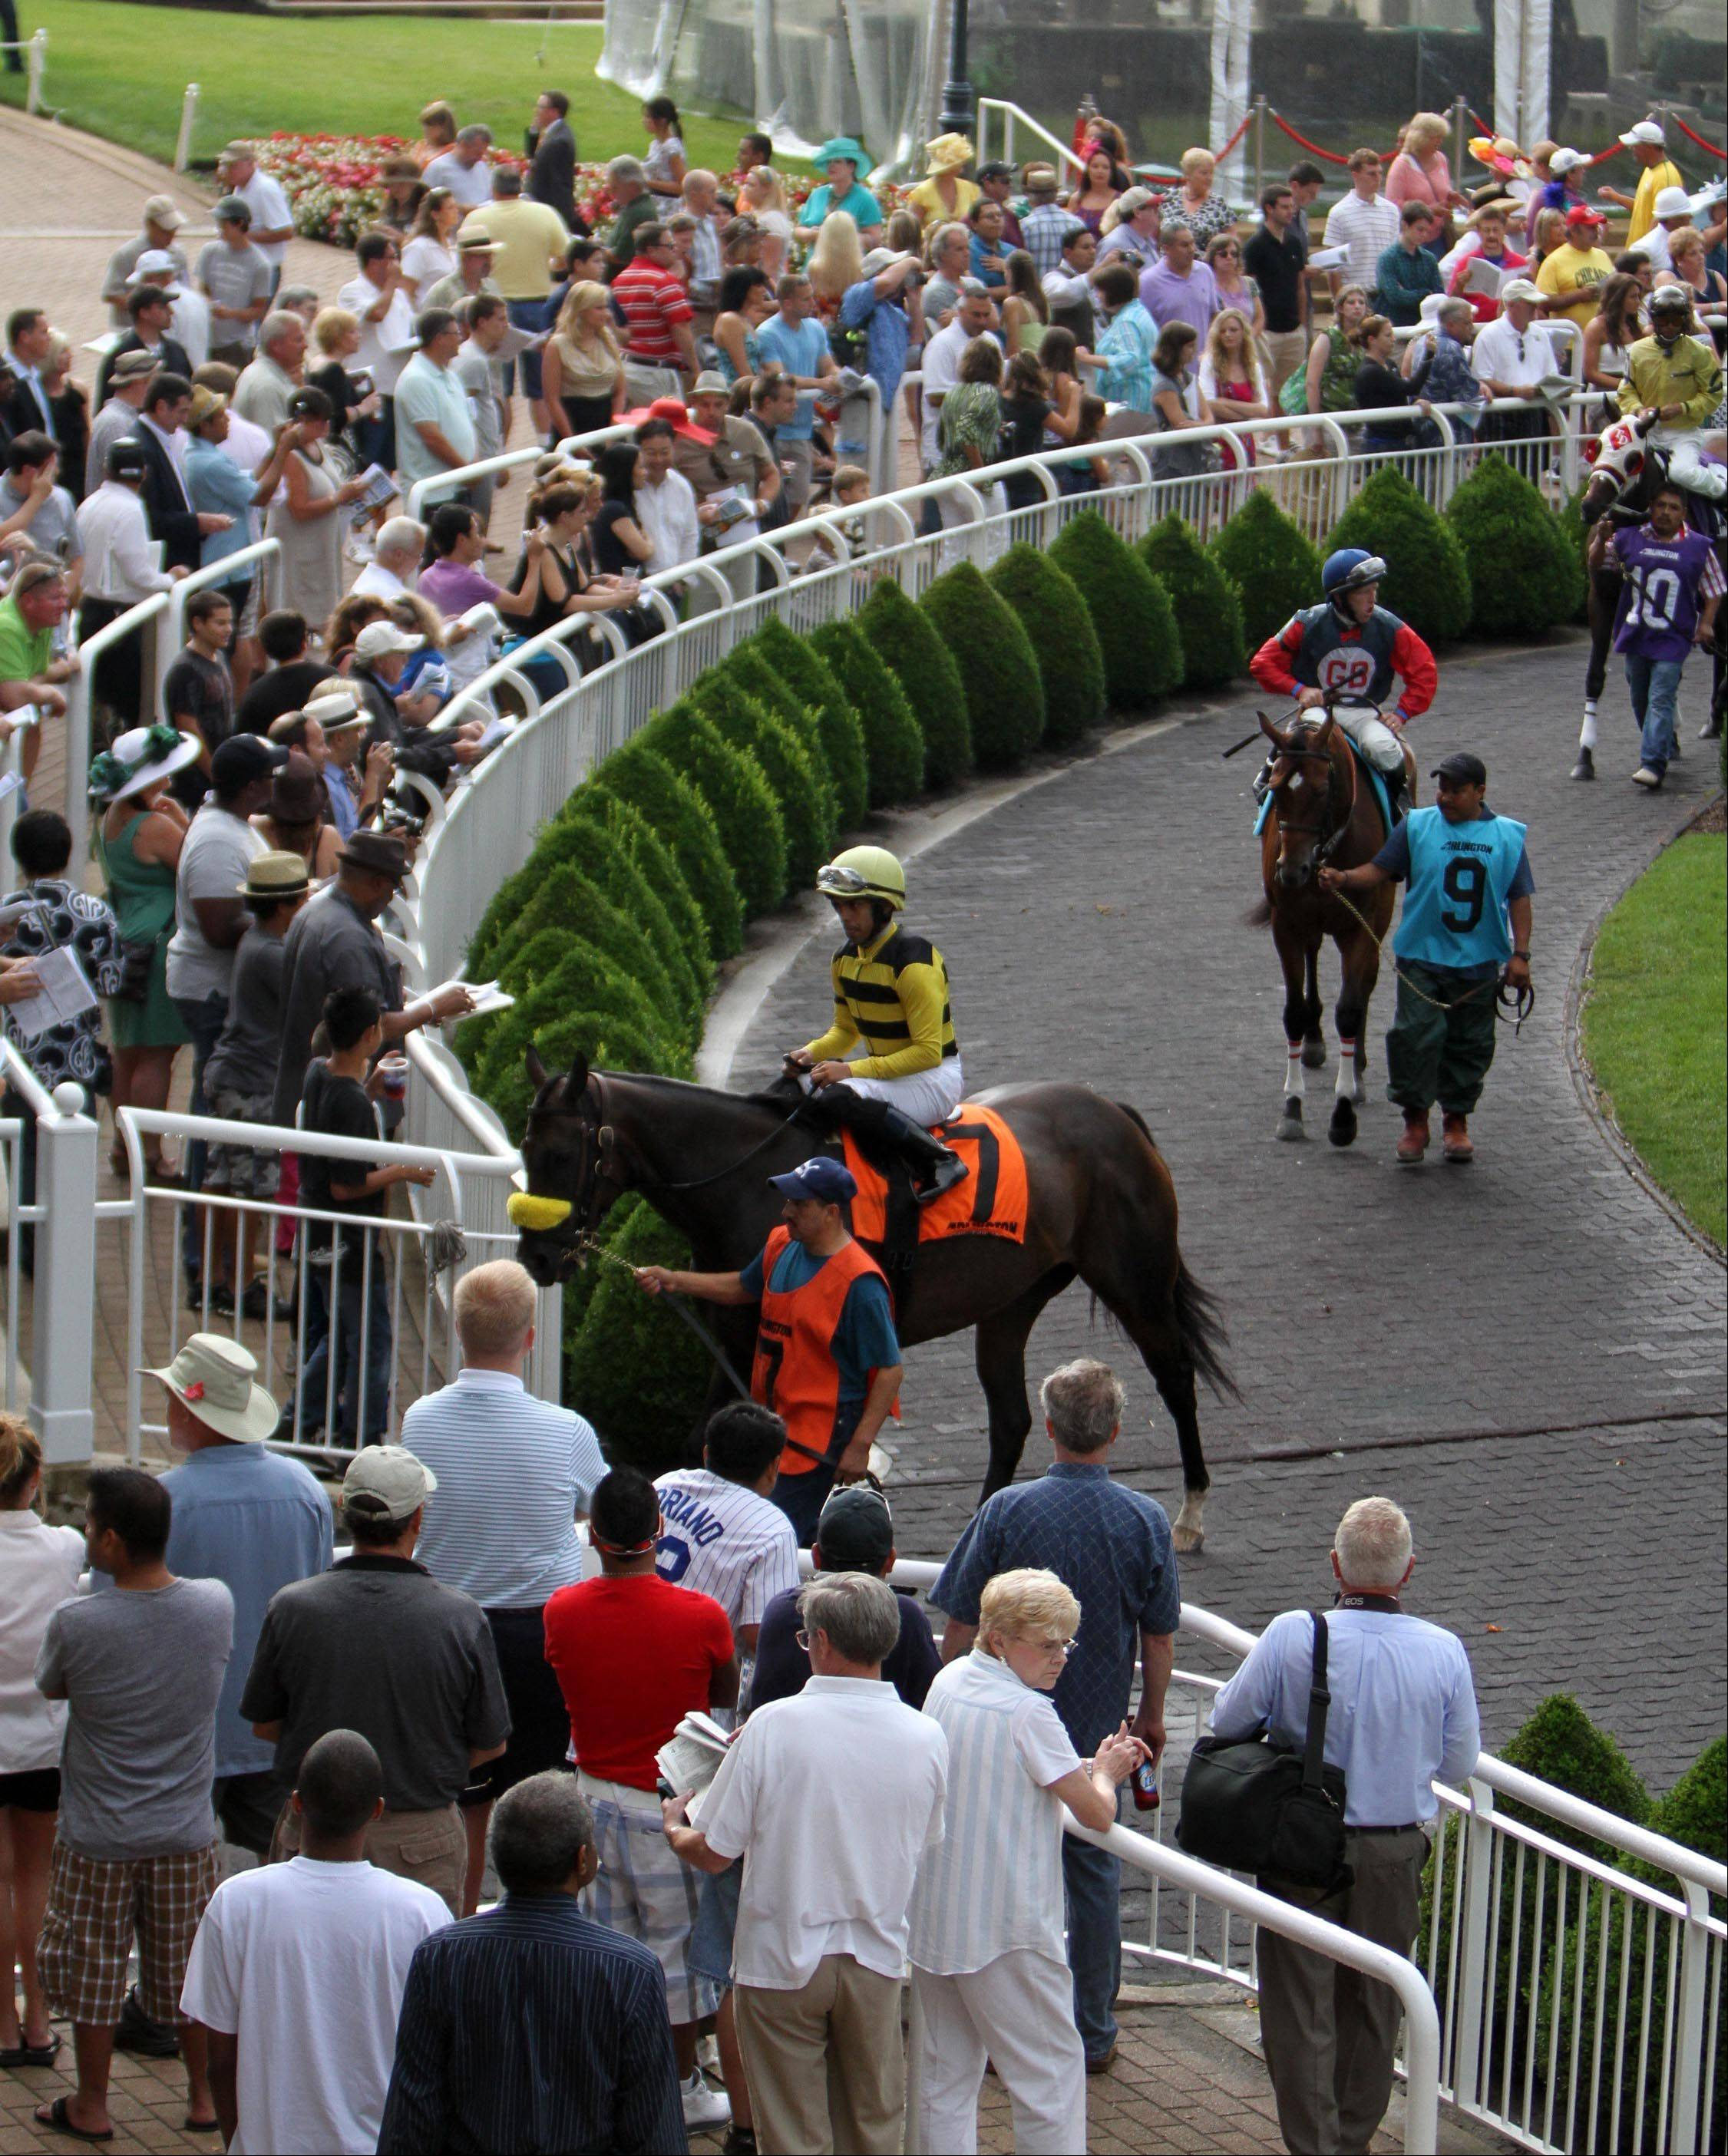 Horses on parade before an early race at Arlington Park on Saturday.